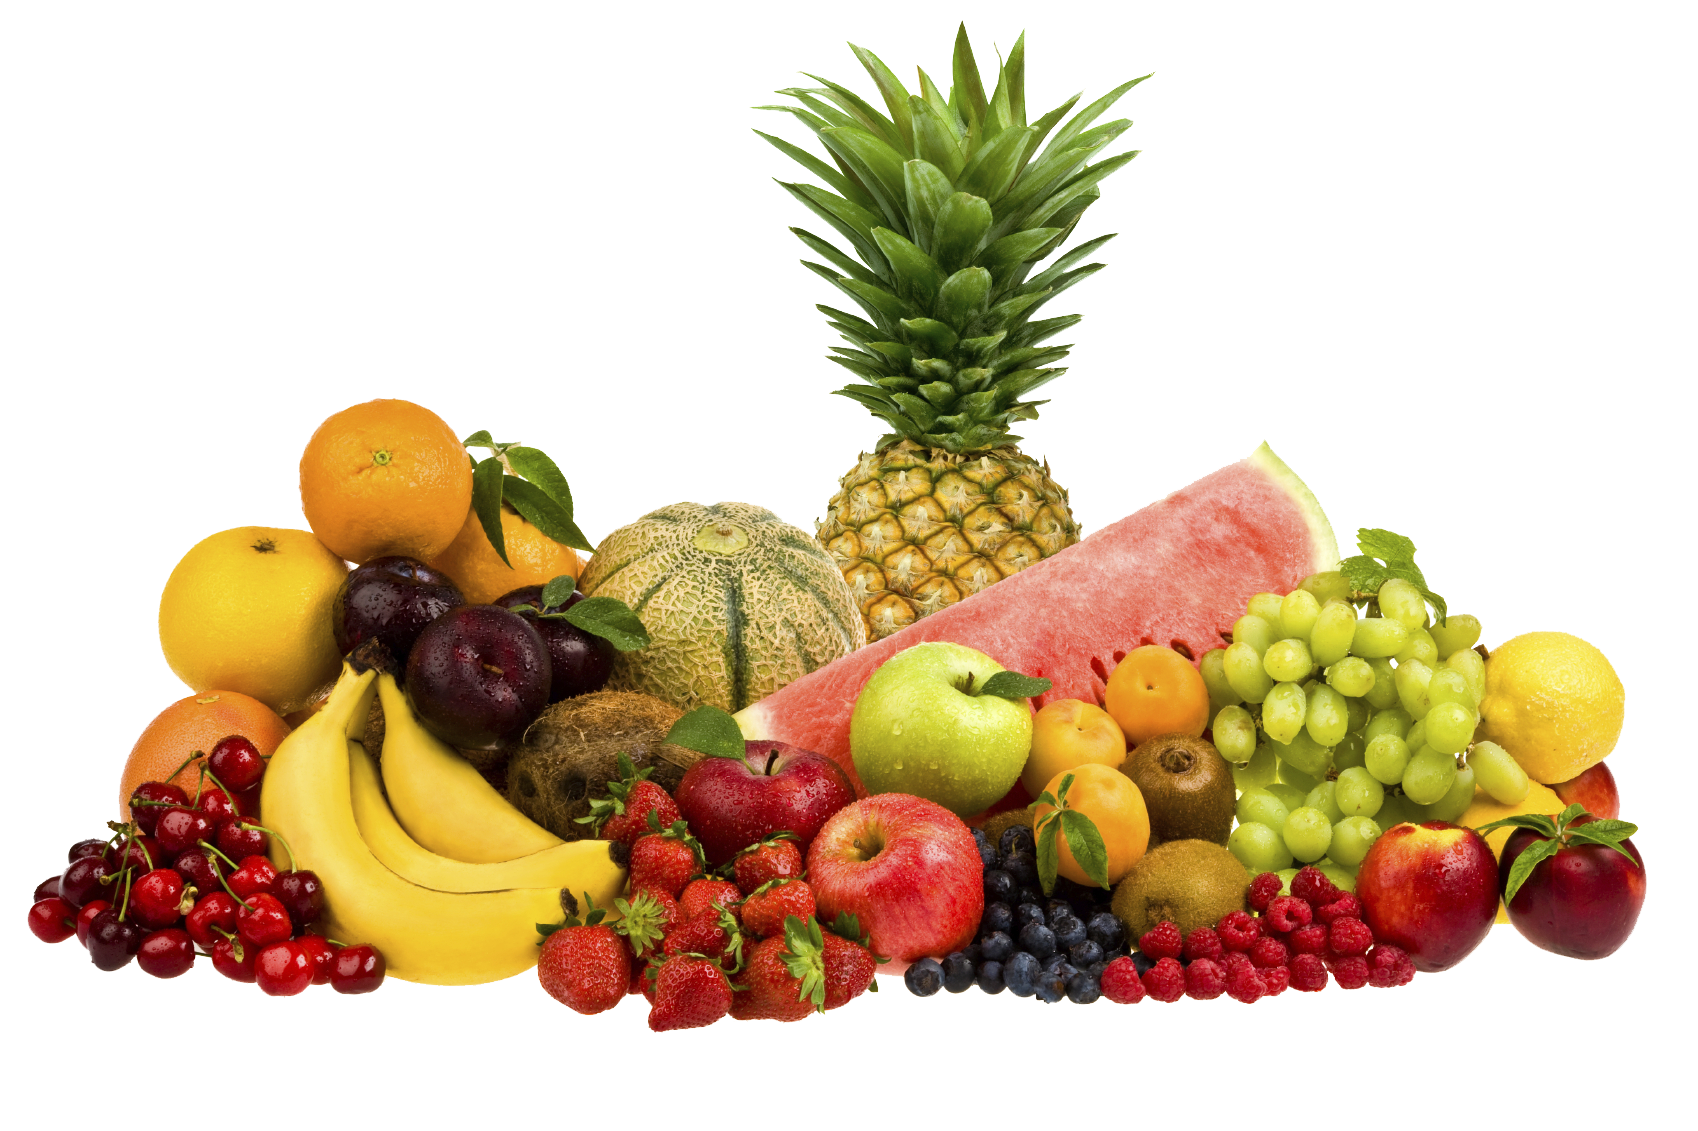 fruits and vegetables png transparent fruits and #15423